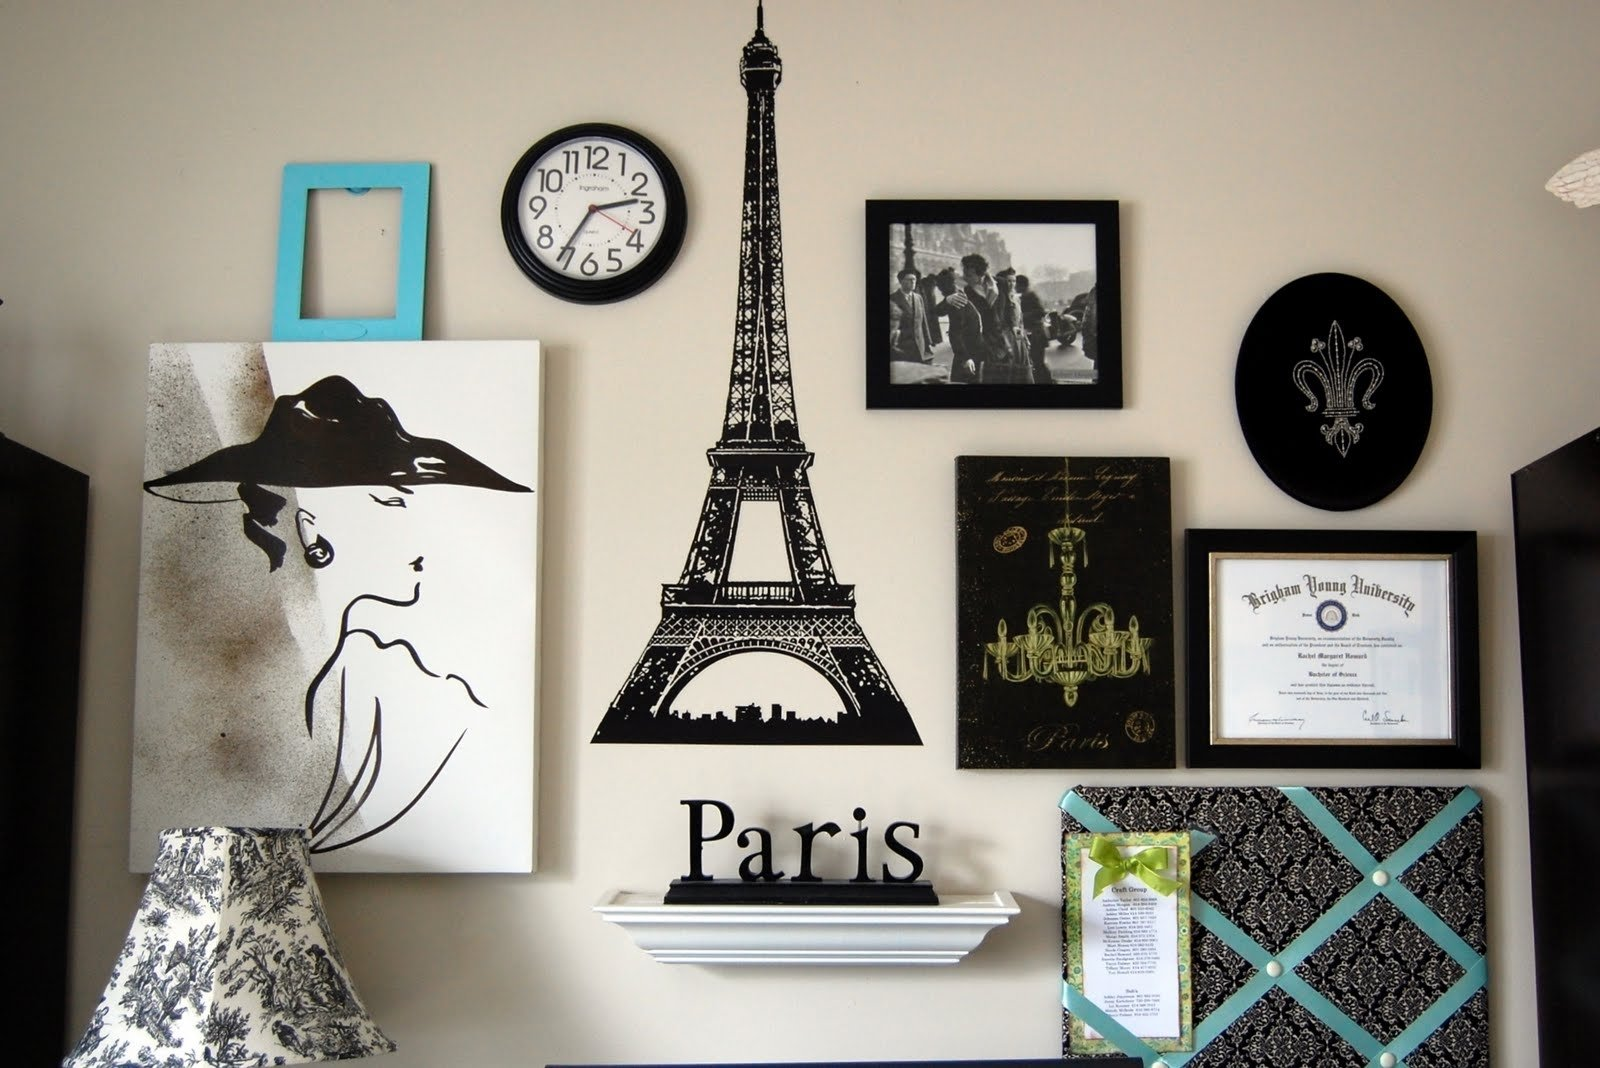 10 Most Popular Wall Of Picture Frames Ideas 32 creative gallery wall ideas to transform any room 1 2020